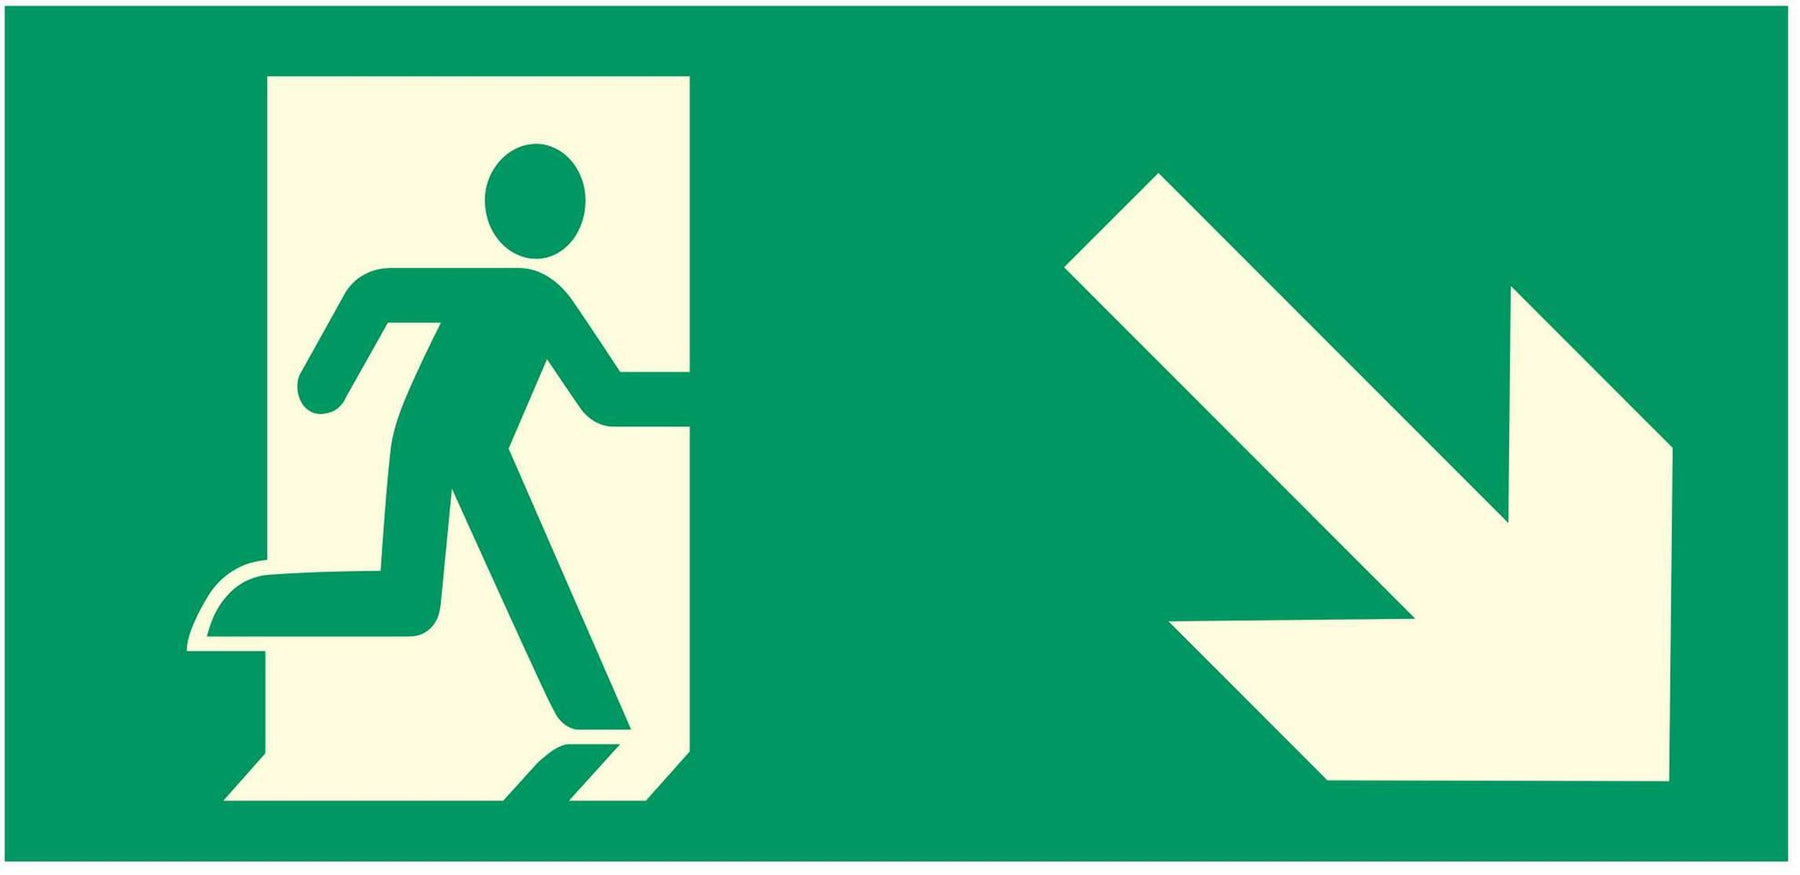 Emergency Escape - Running Man Right - Down Right Arrow